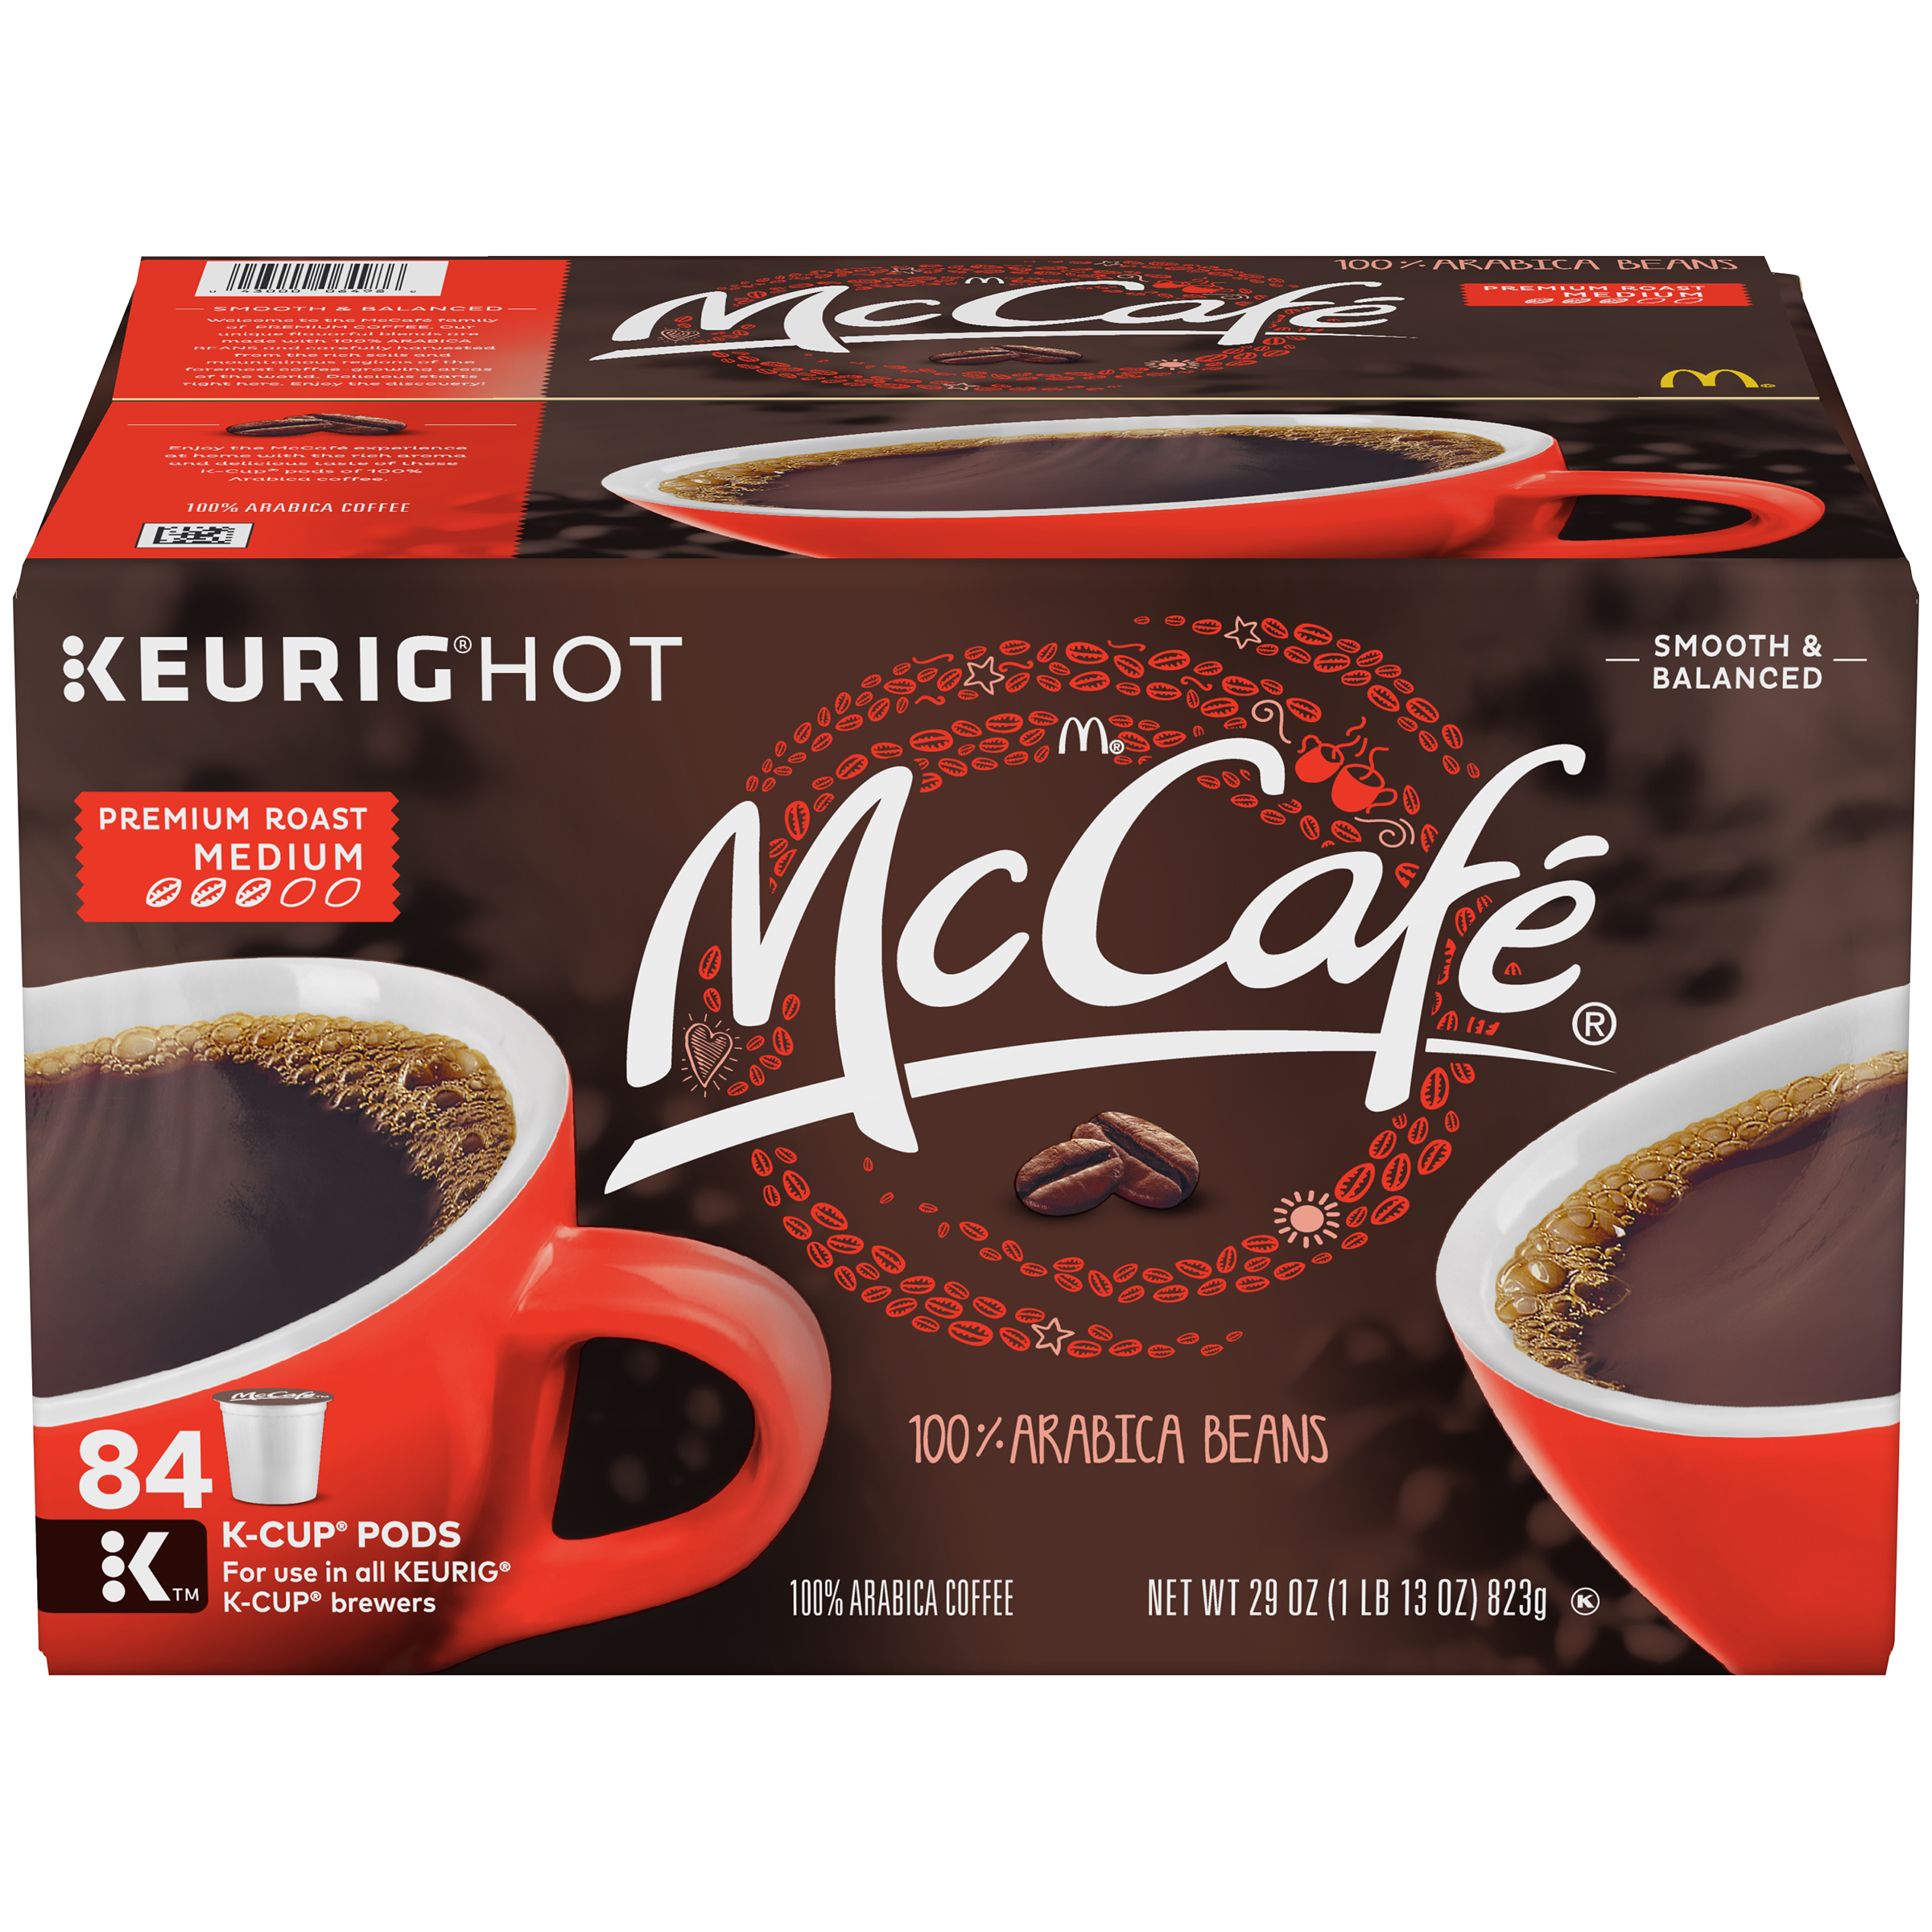 MCCAFE Premium Roast Coffee, K-CUP PODS